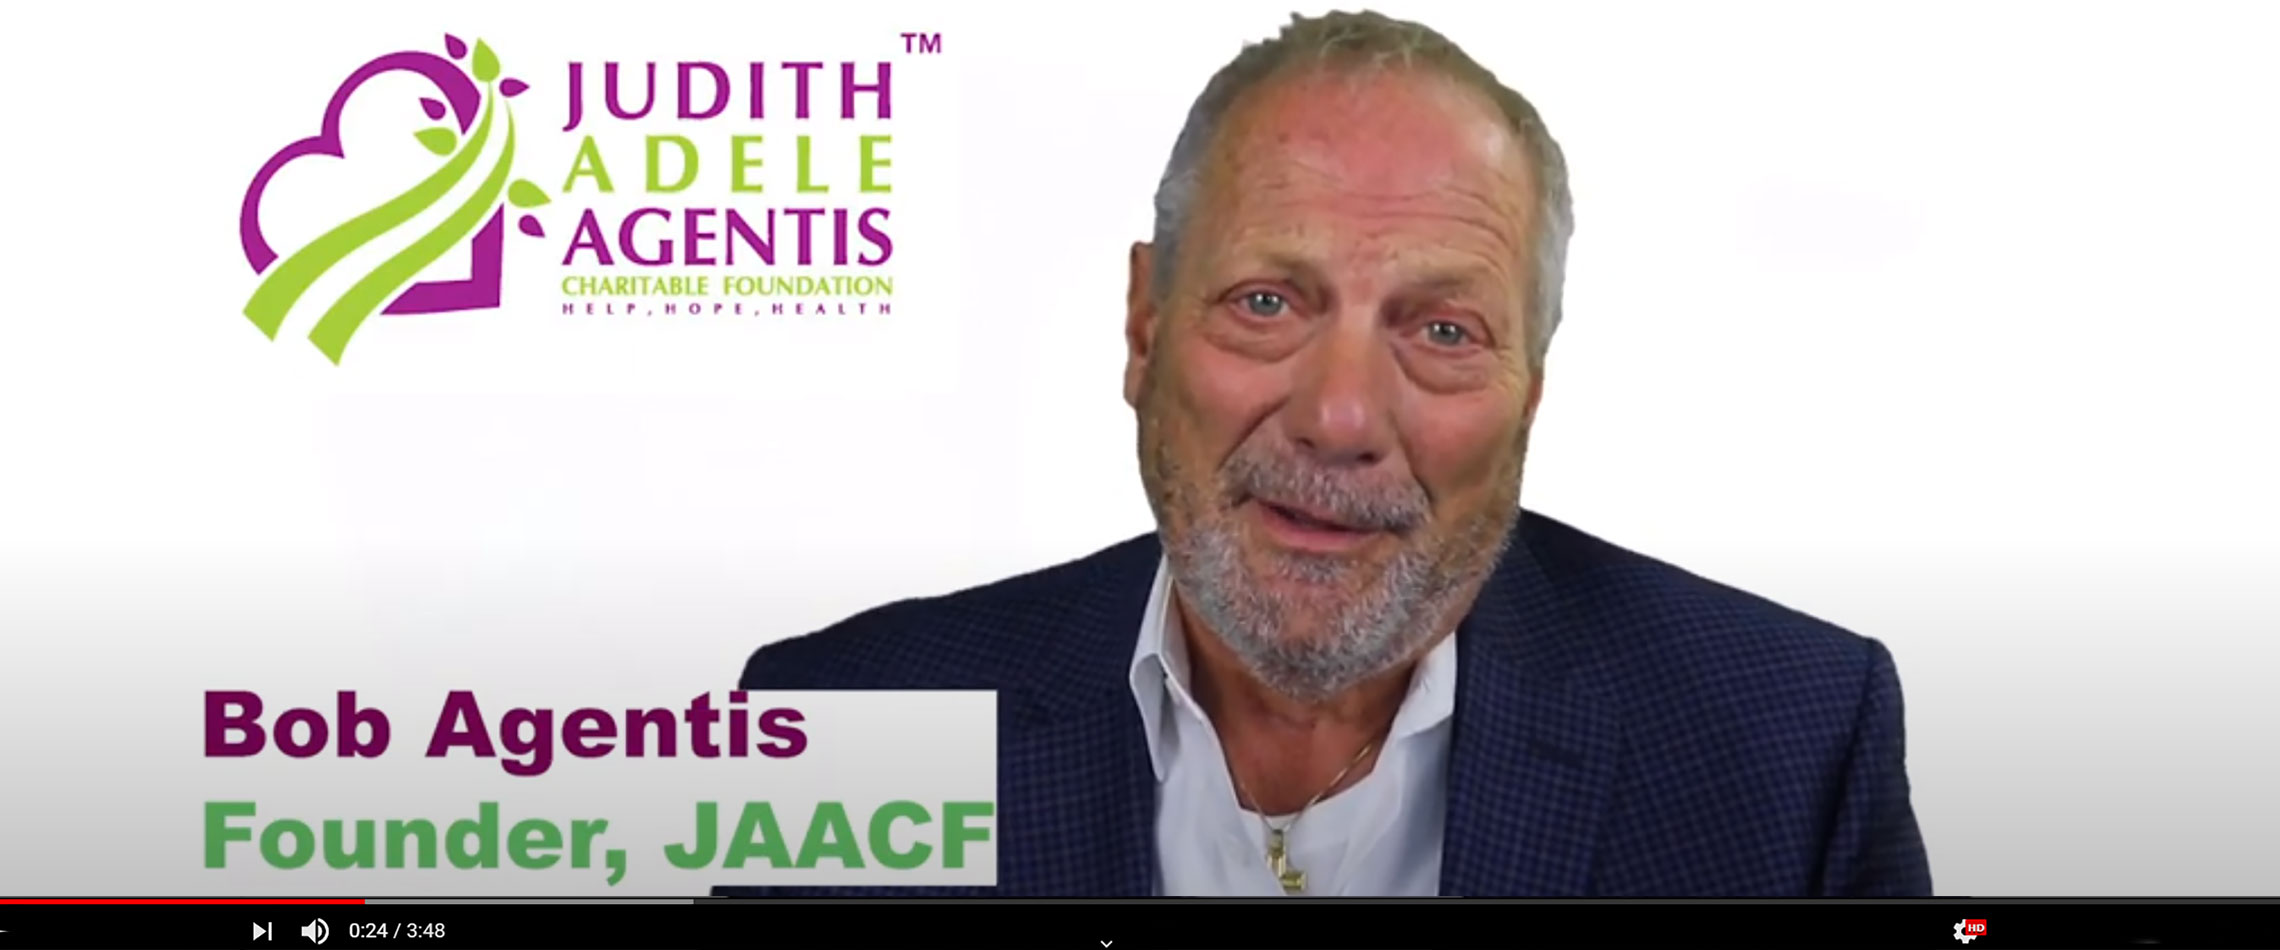 A brief history of the Judith Adele Agentis Charitable Foundation